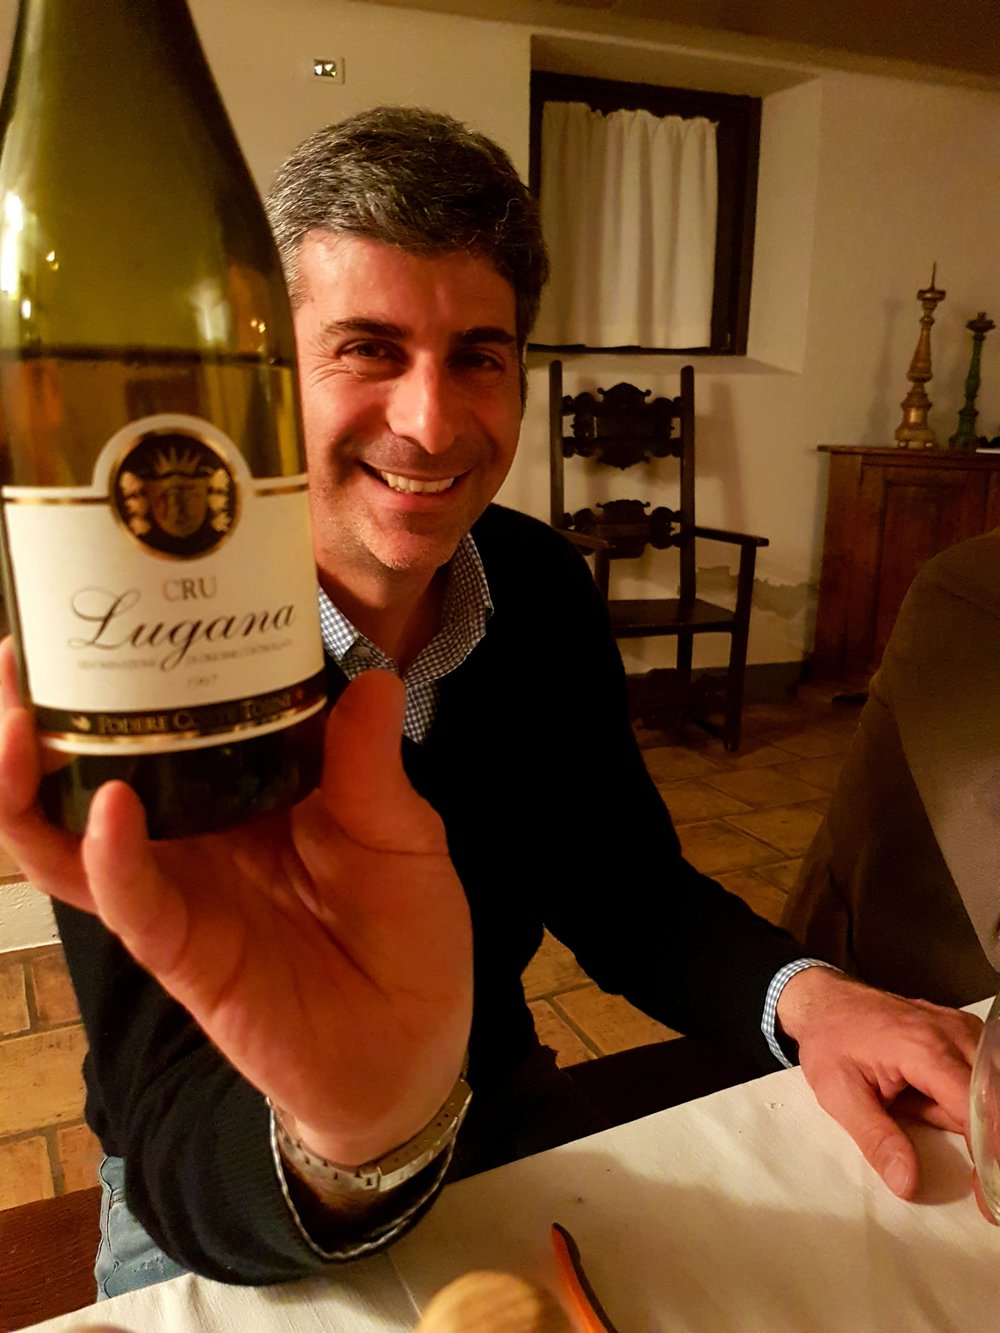 unzio with a 1997 Cru Lugana in his kitchen when we visited in February 2017